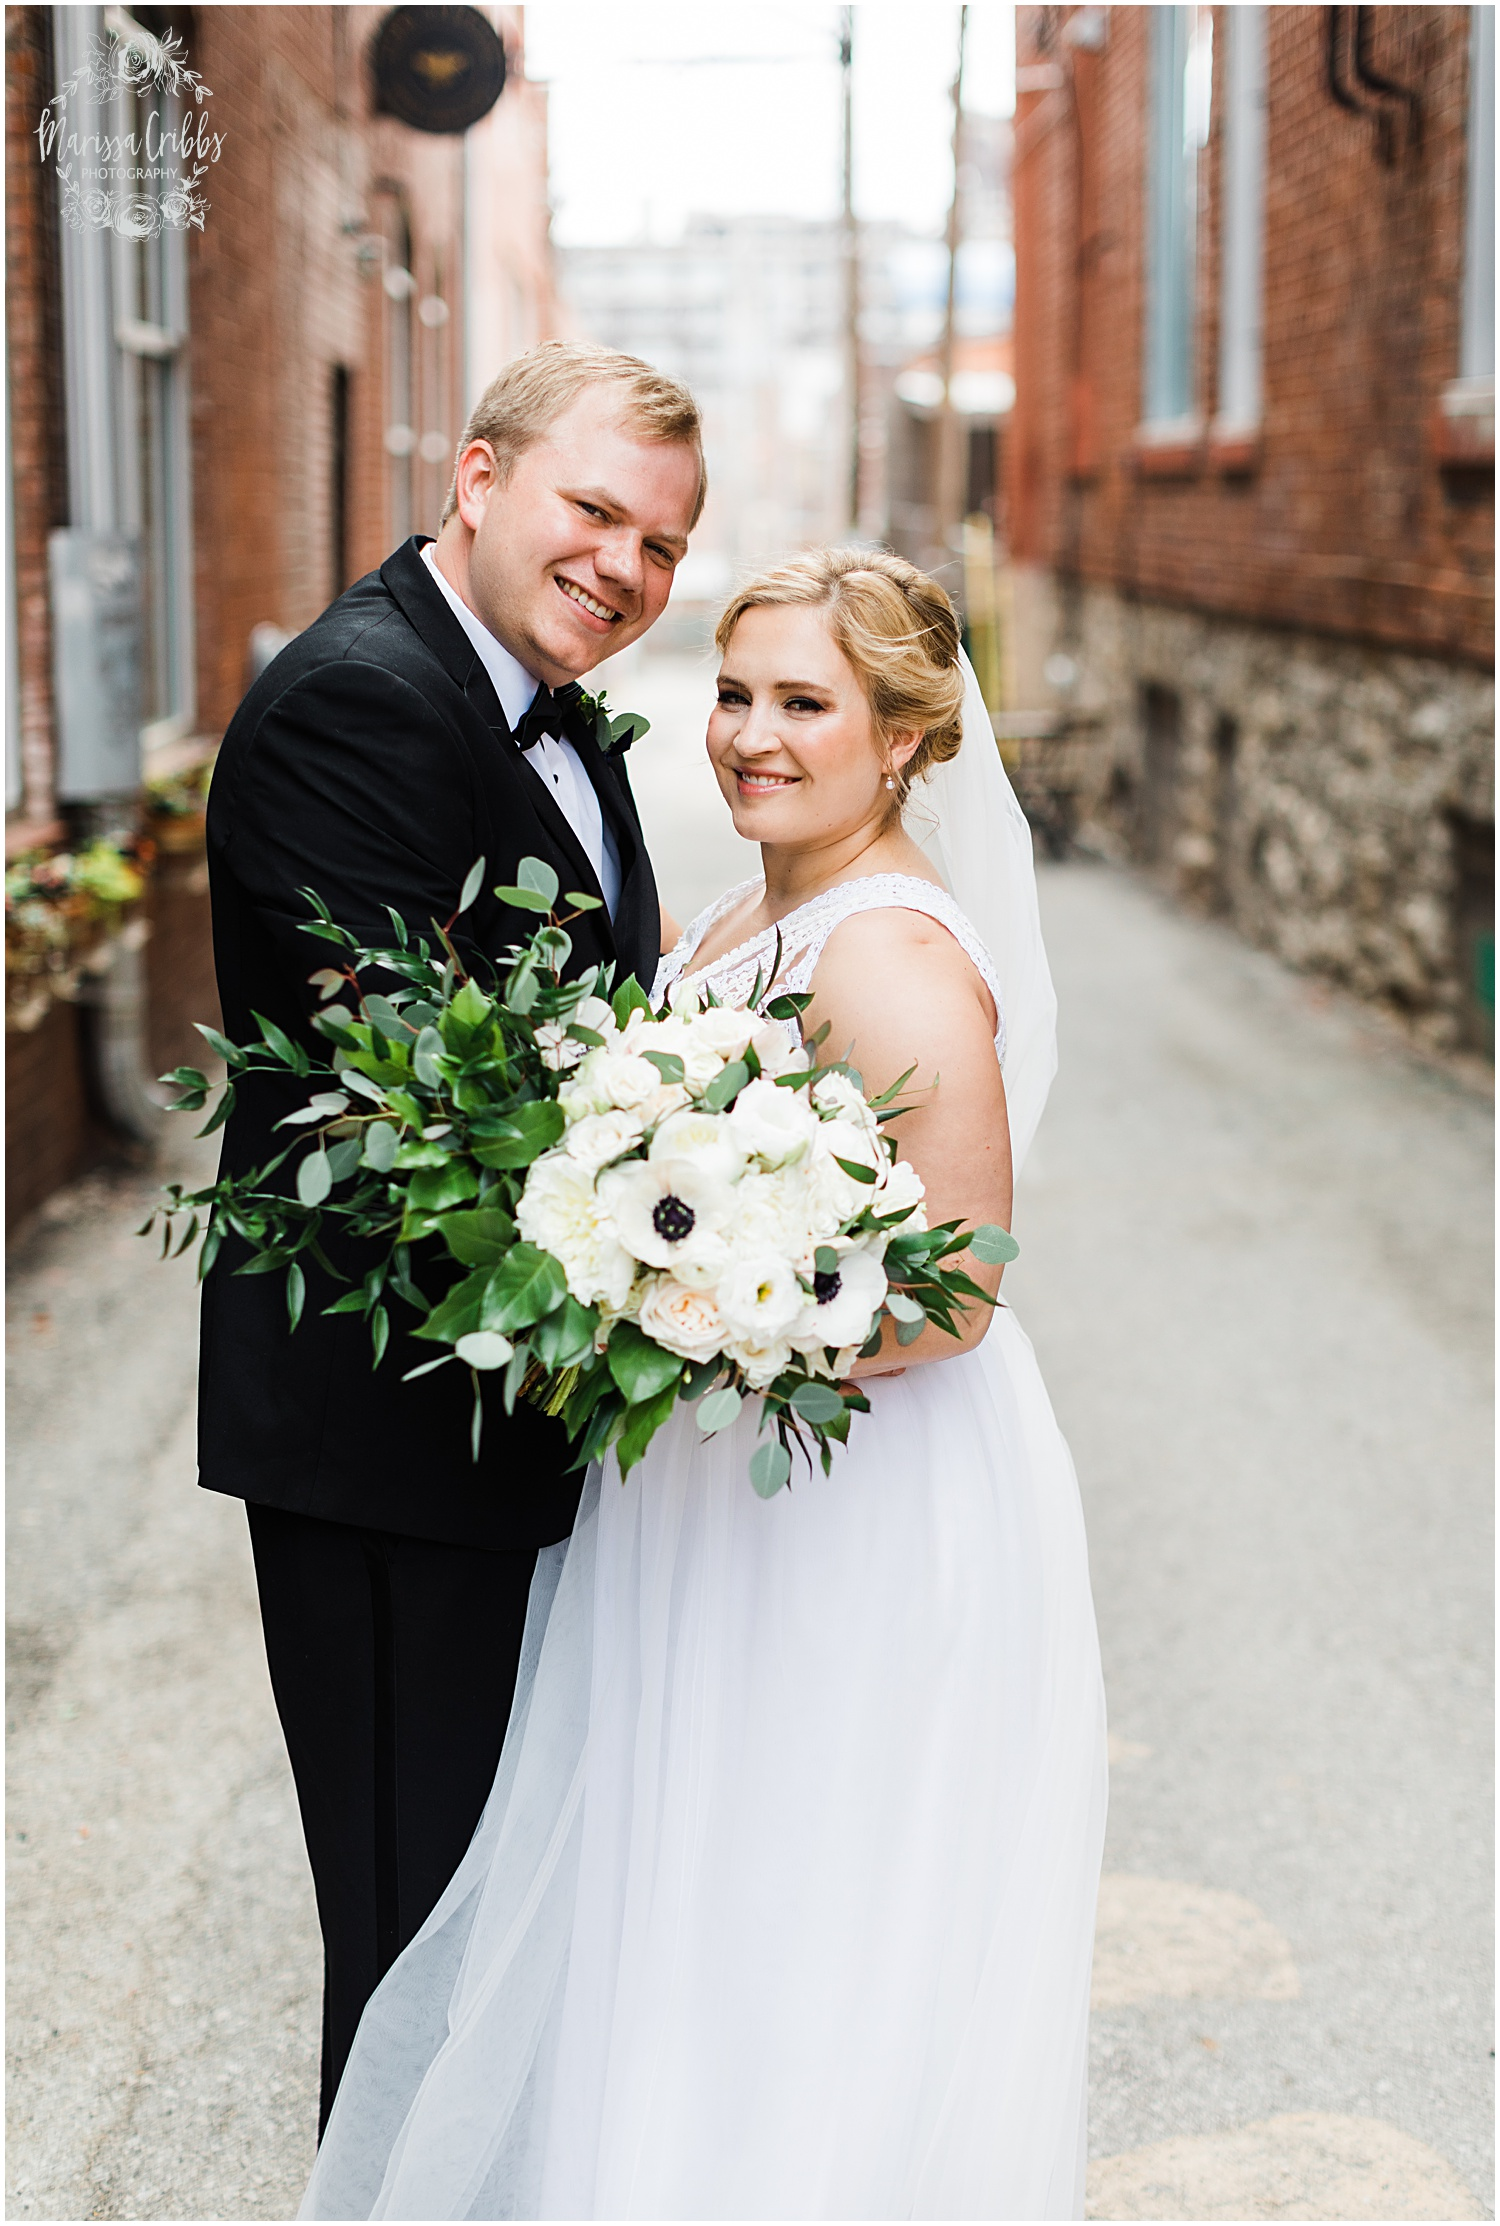 RACHEL & SCOTT MARRIED | MARISSA CRIBBS PHOTOGRAPHY_7660.jpg